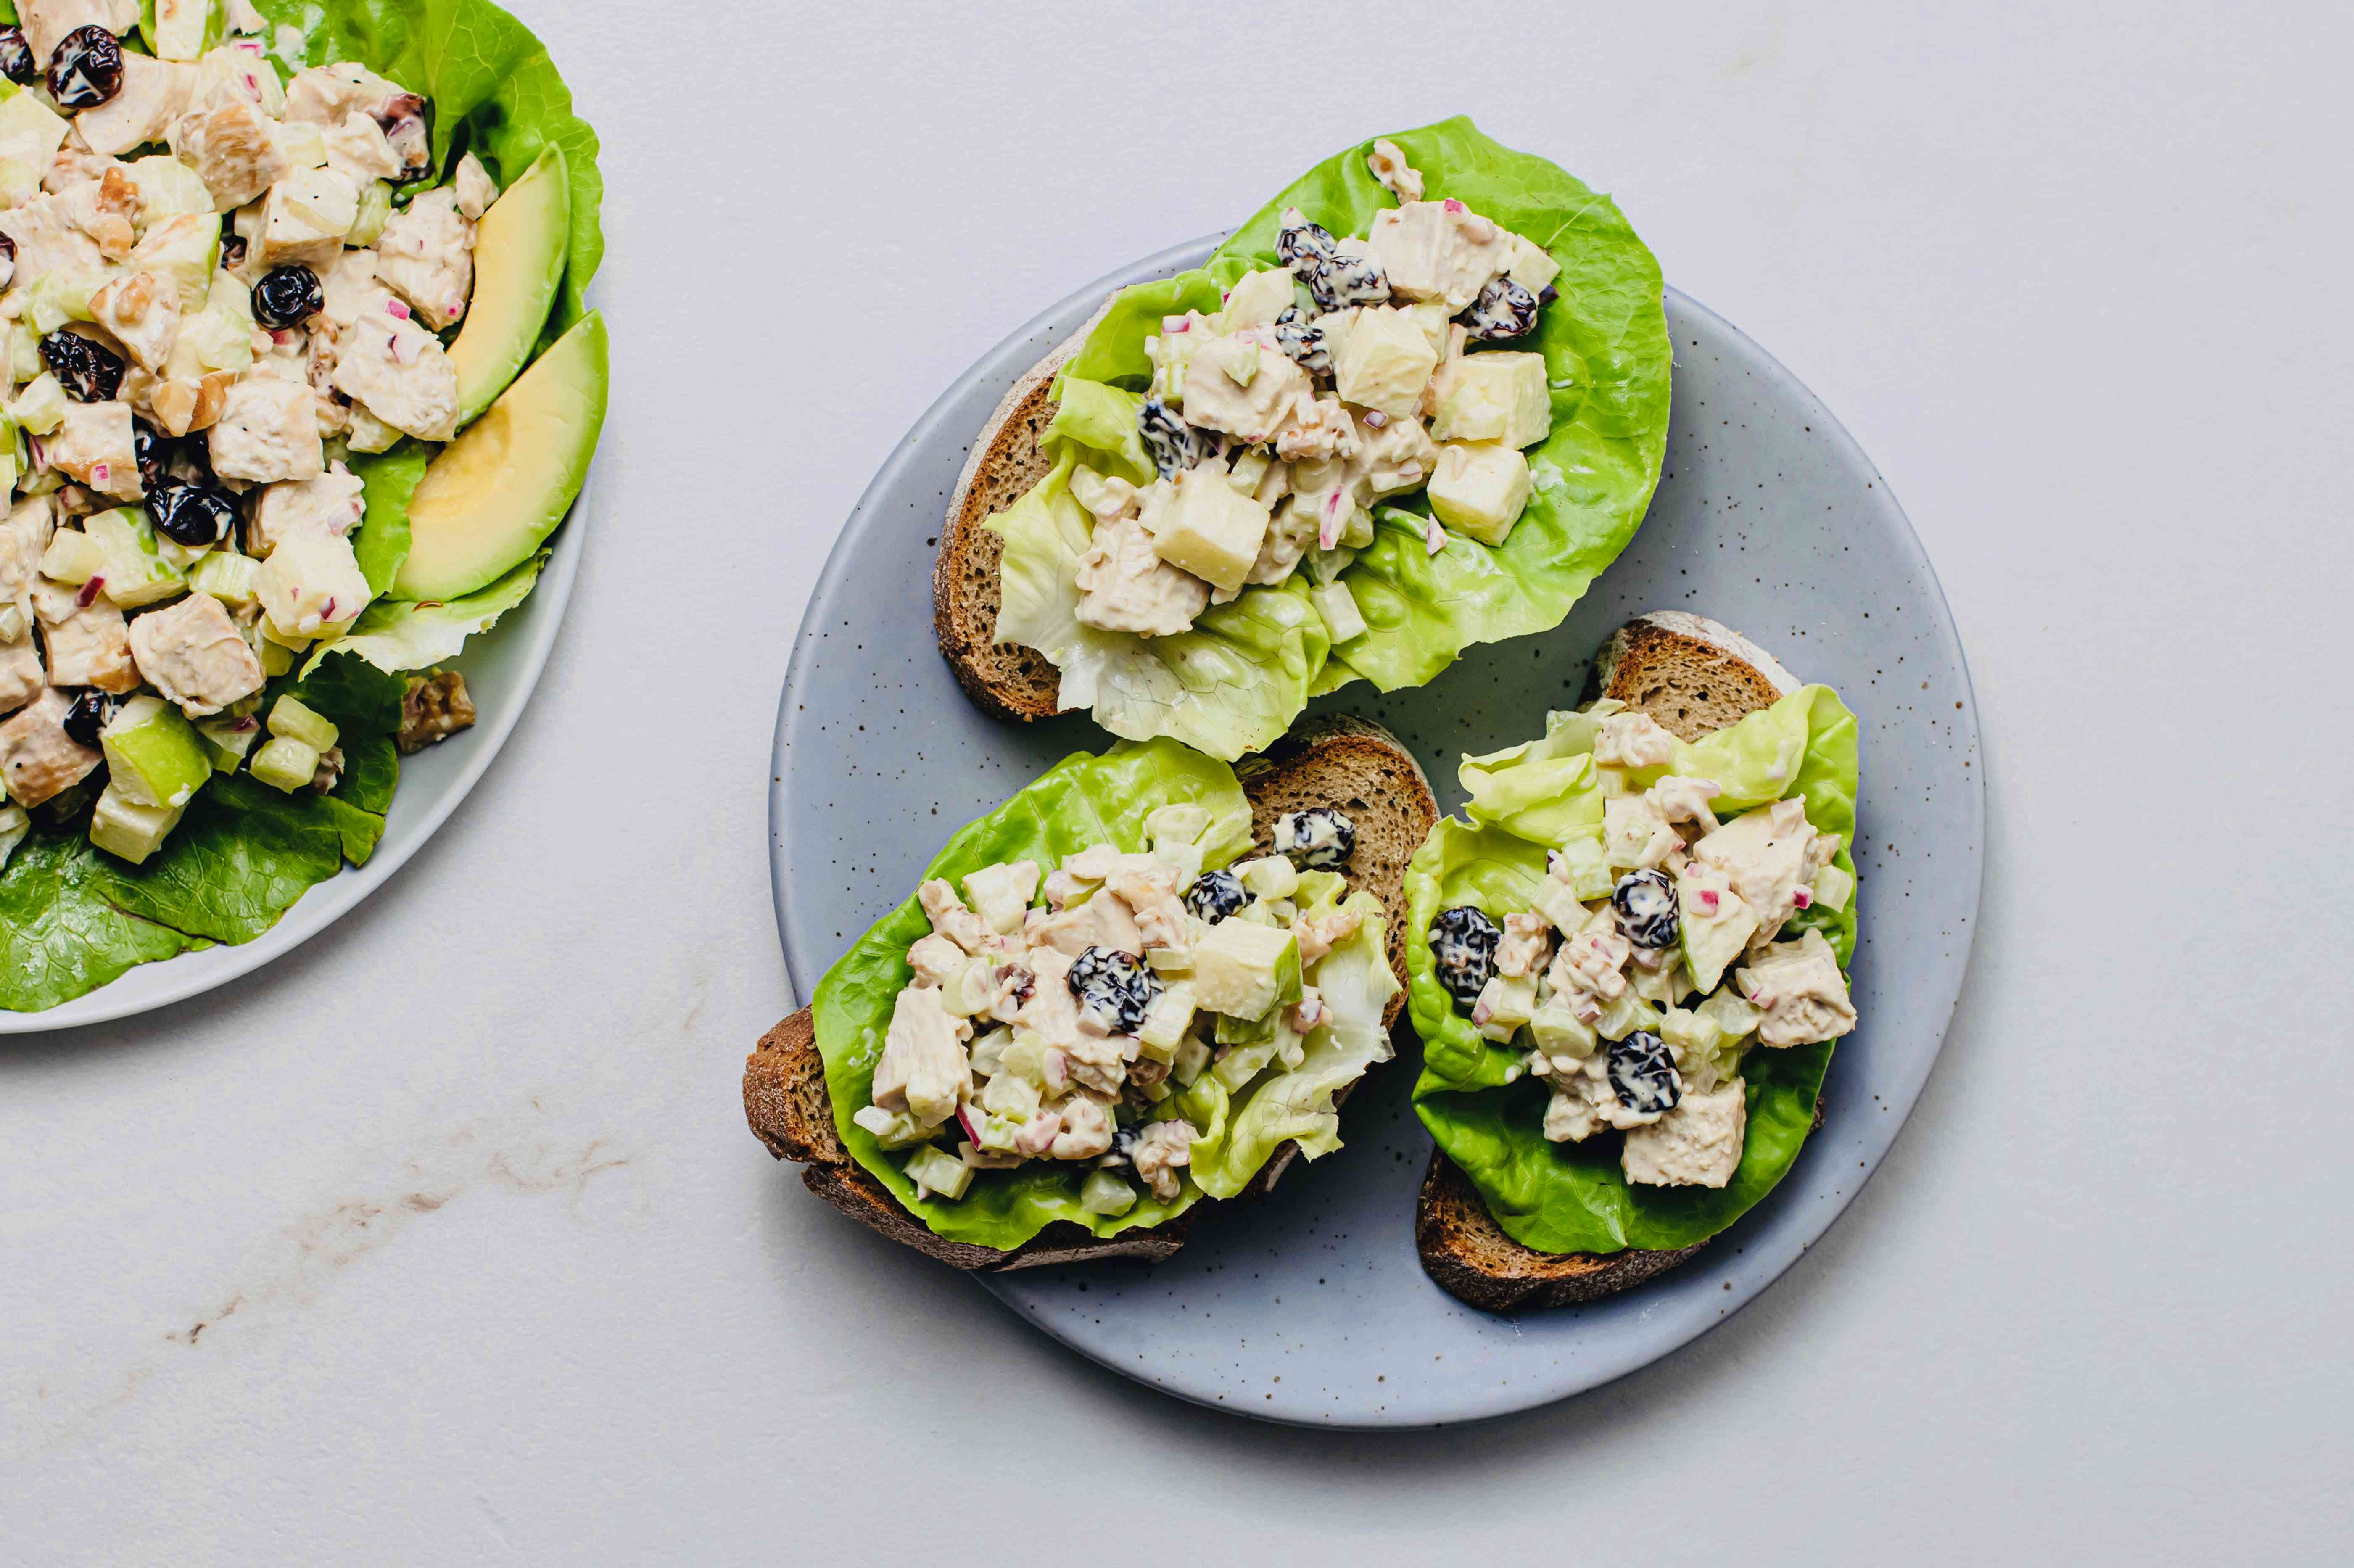 Chicken Salad With Apples and Cranberries recipe, chicken salad on bread